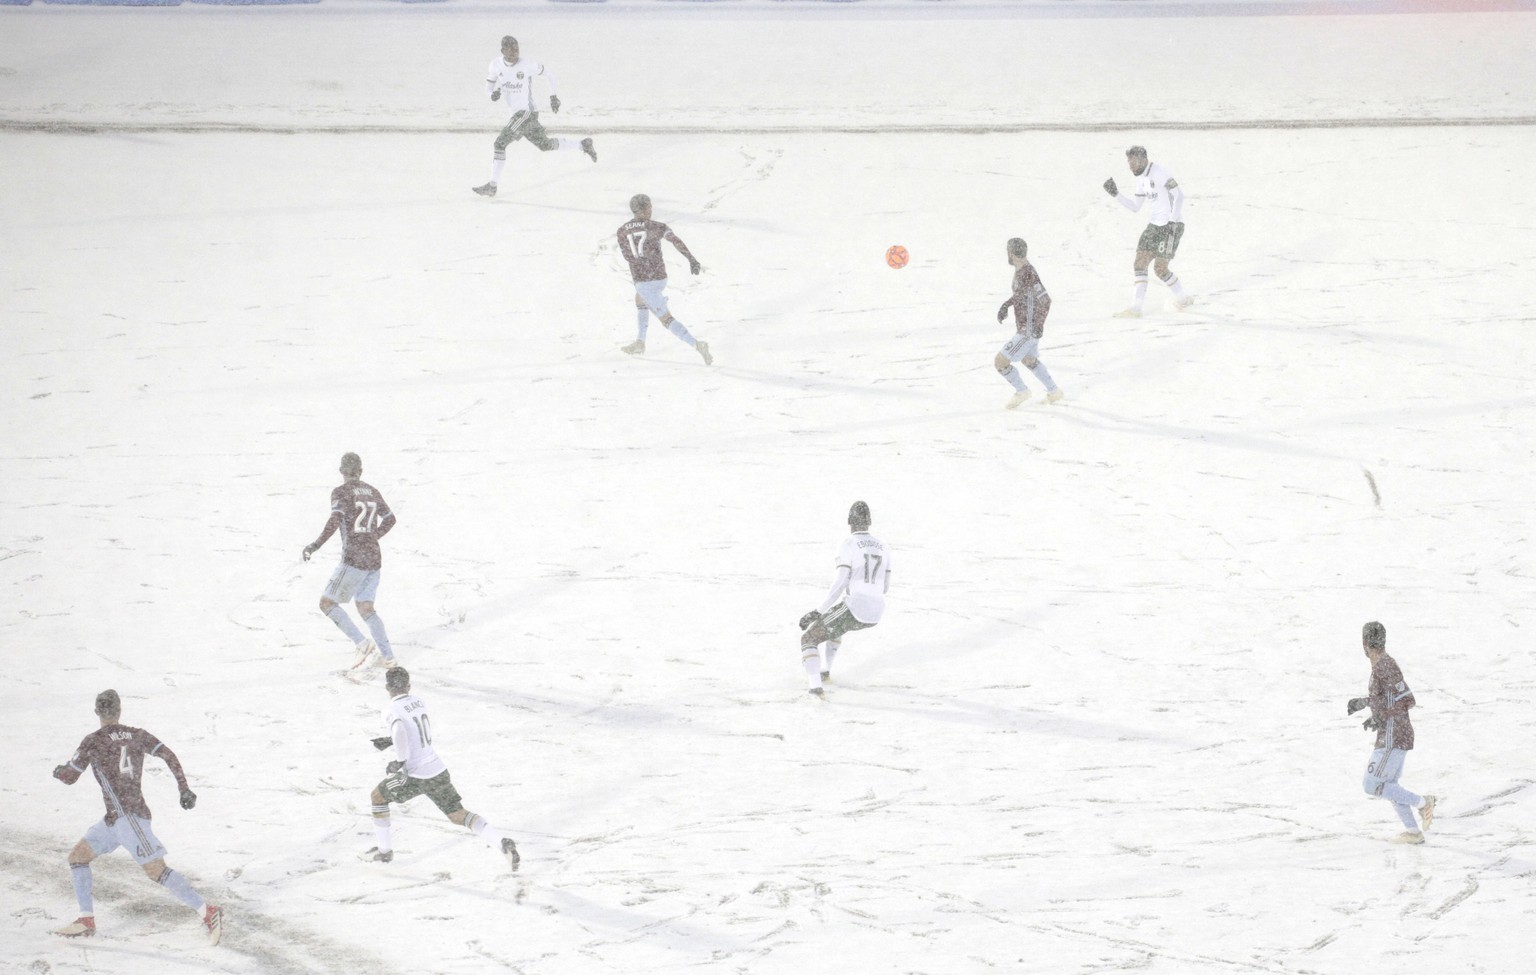 The Colorado Rapids play the Portland Timbers on a snow-covered pitch during the second half of an MLS soccer game Saturday, March. 2, 2019 in Commerce City, Colo. (AP Photo/Joe Mahoney)